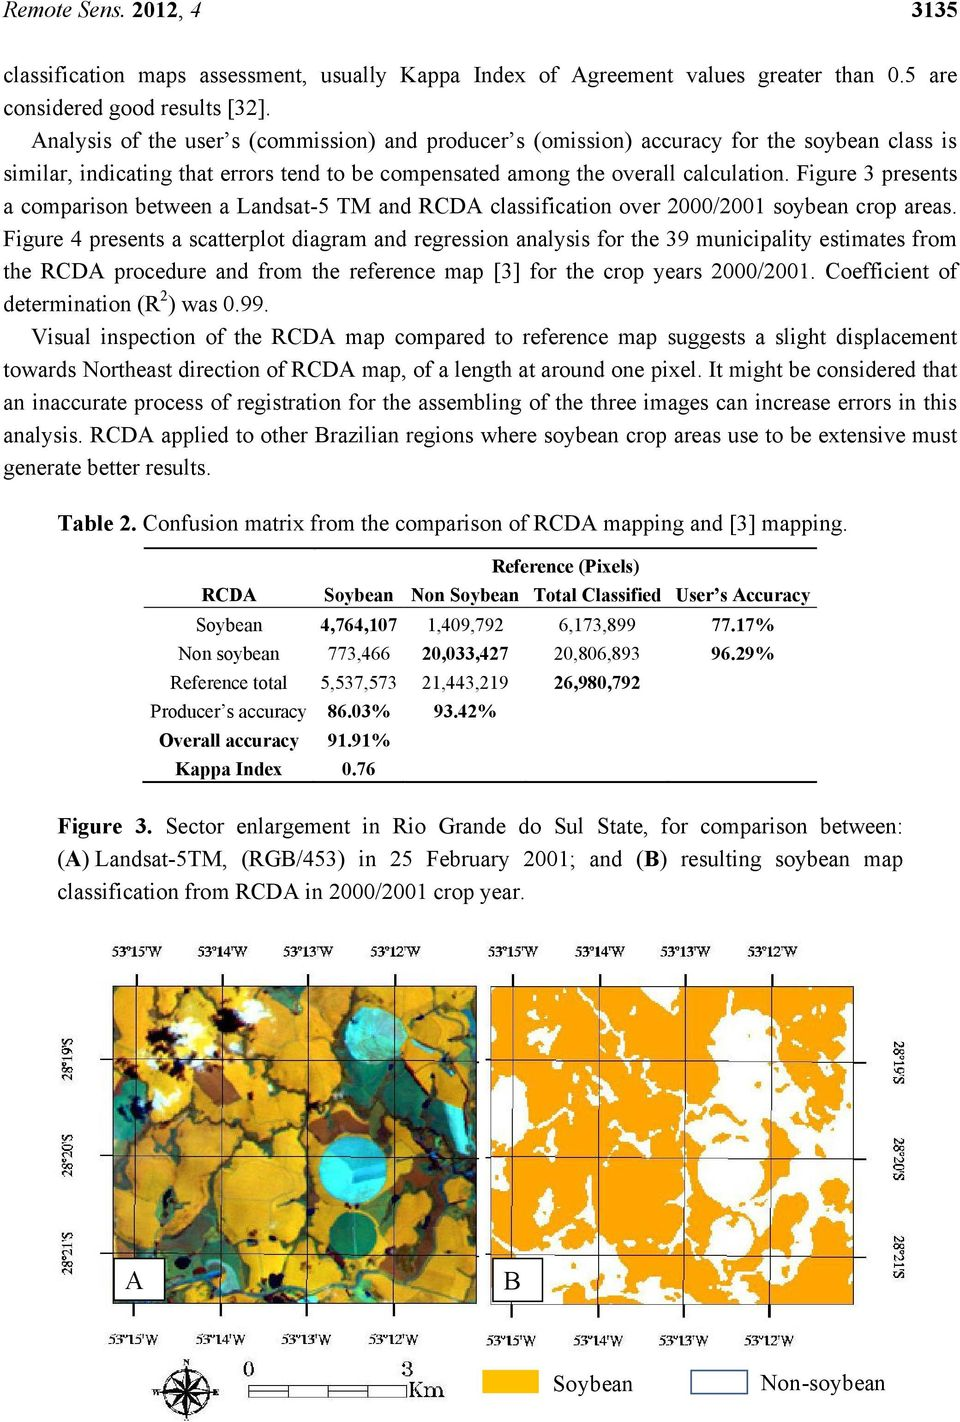 Figure 3 presents a comparison between a Landsat-5 TM and classification over 2/21 soybean crop areas.